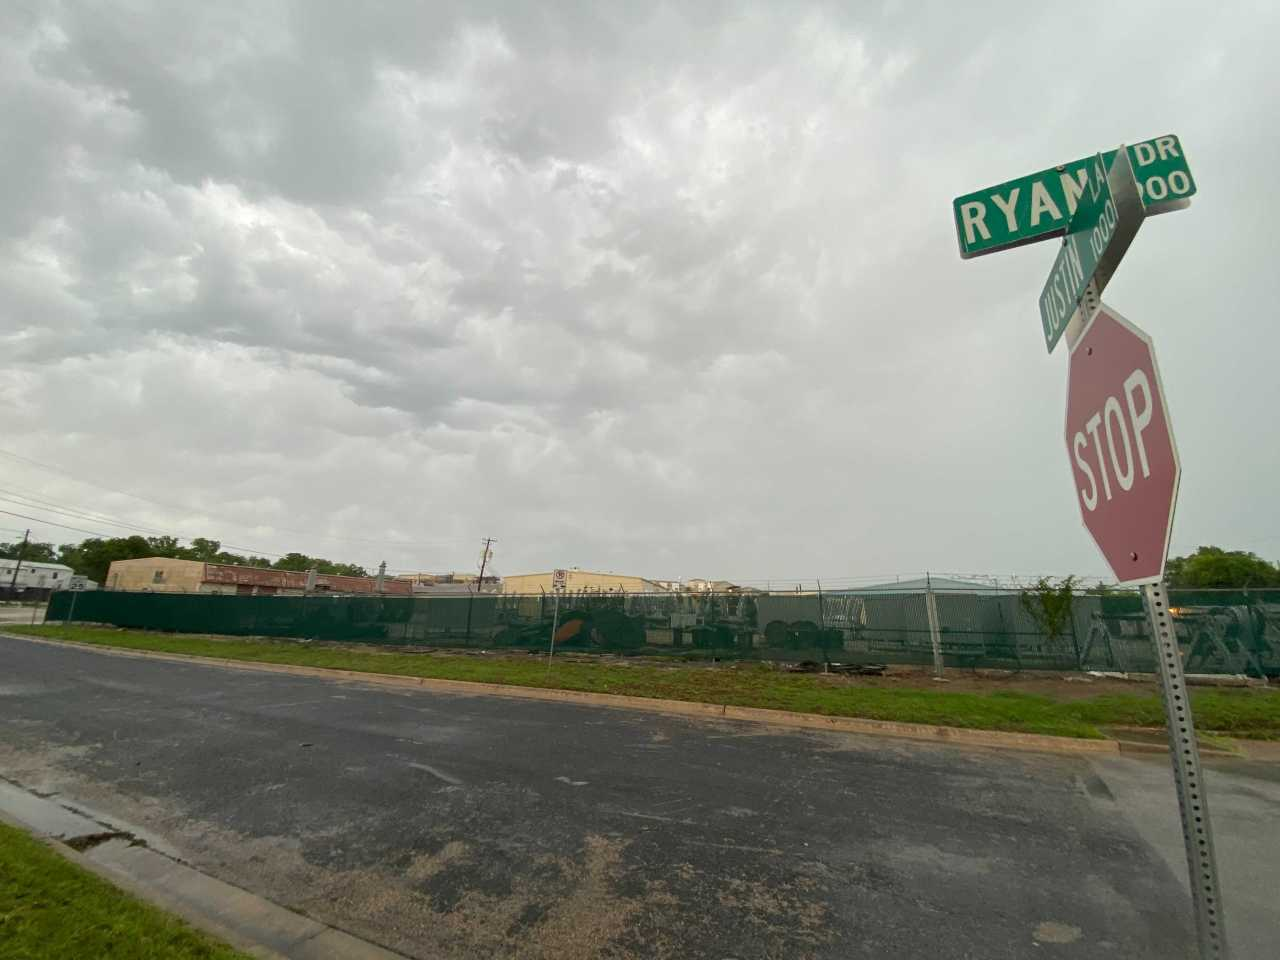 Some Austin neighbors worry one property slated for affordable housing may become a tent city